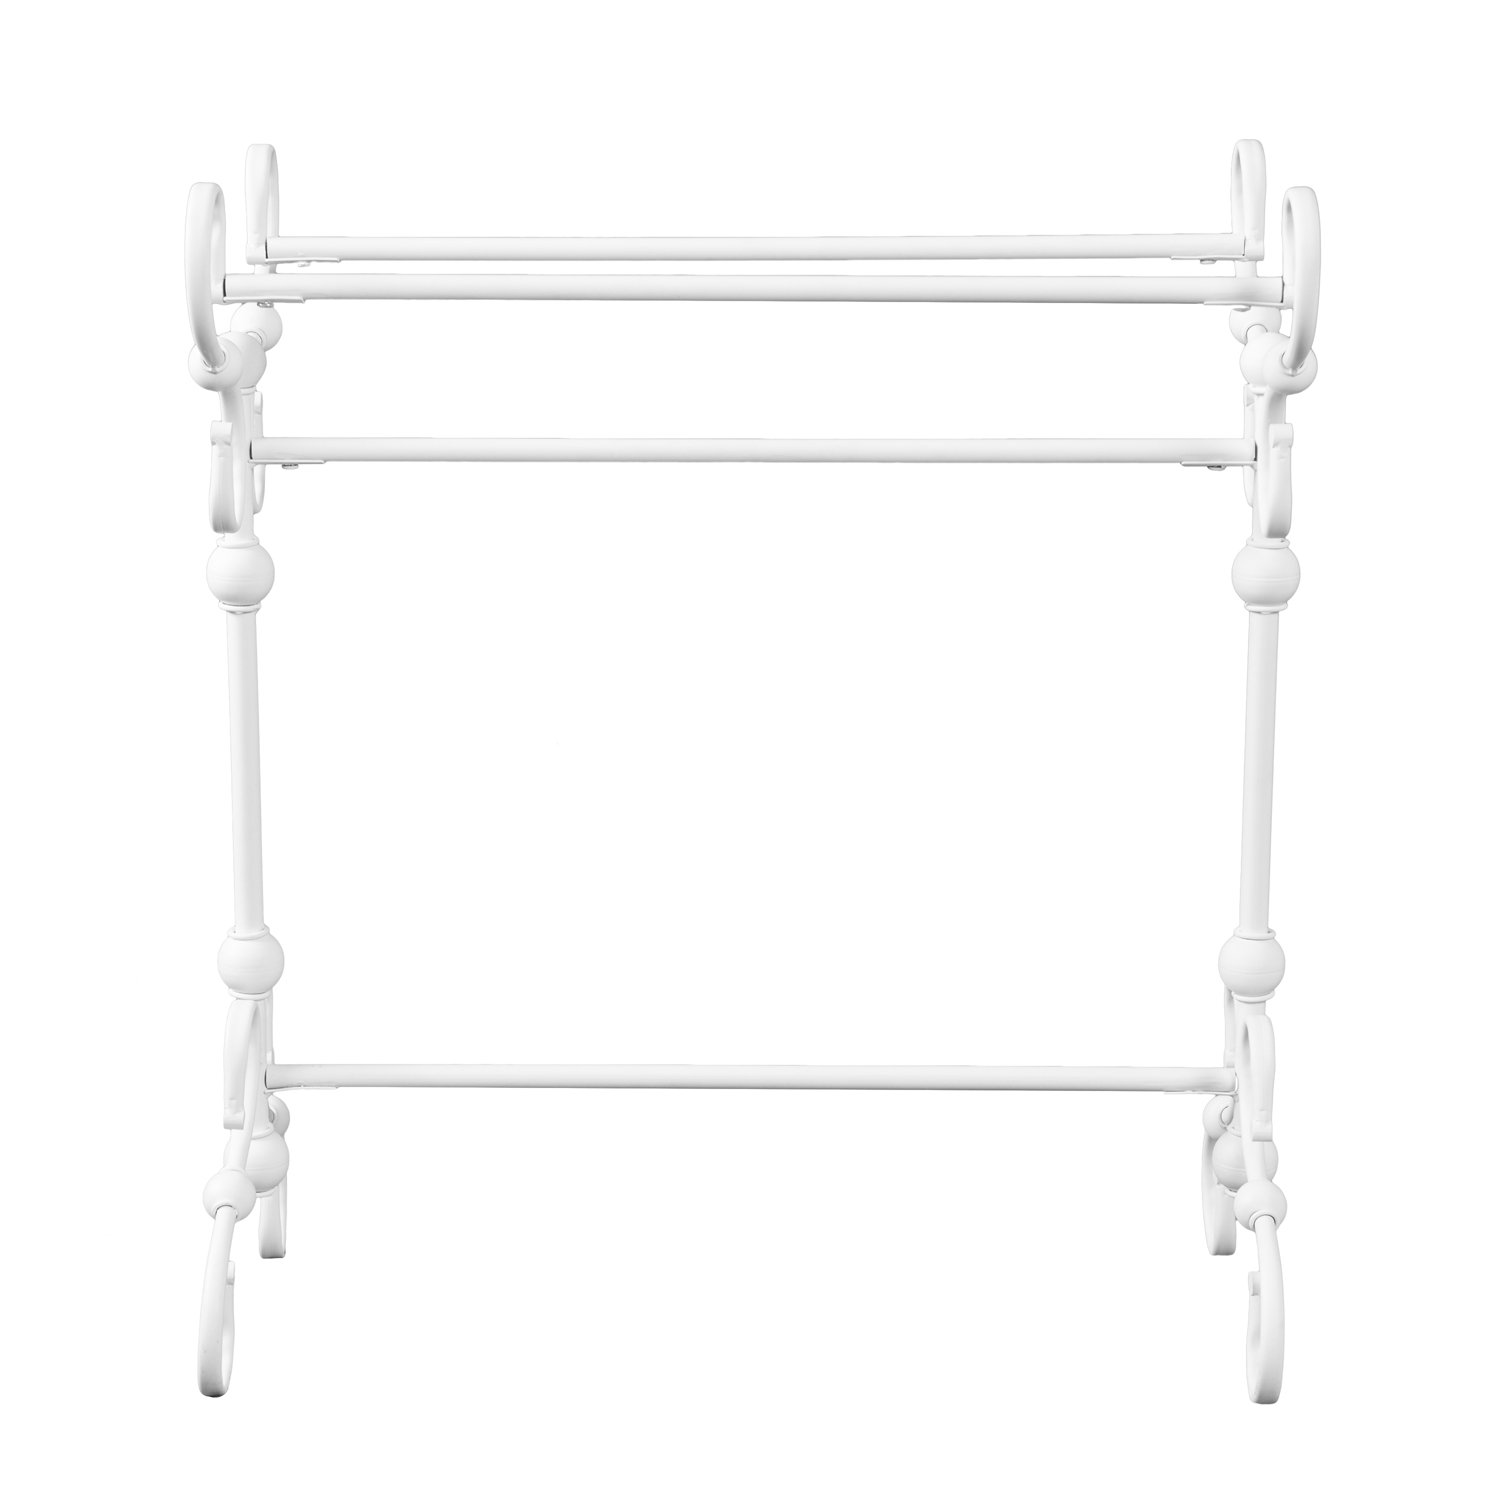 Furniture HotSpot - Blanket Rack - White - 28.5'' W x 14'' D x 32'' H by Furniture HotSpot